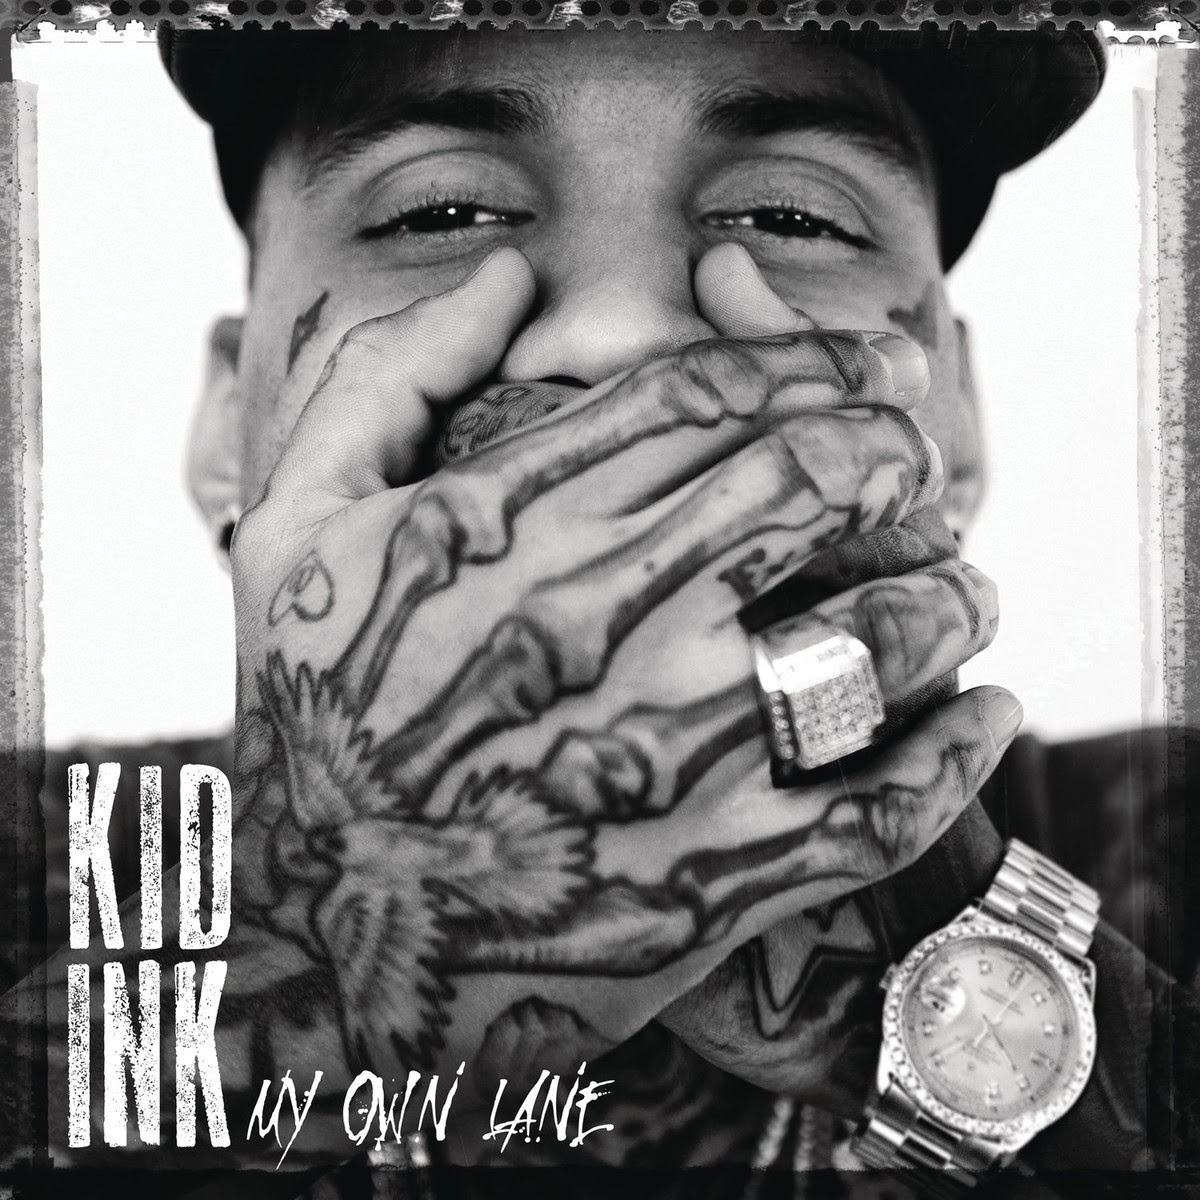 Kid Ink - My Own Lane Album Cover